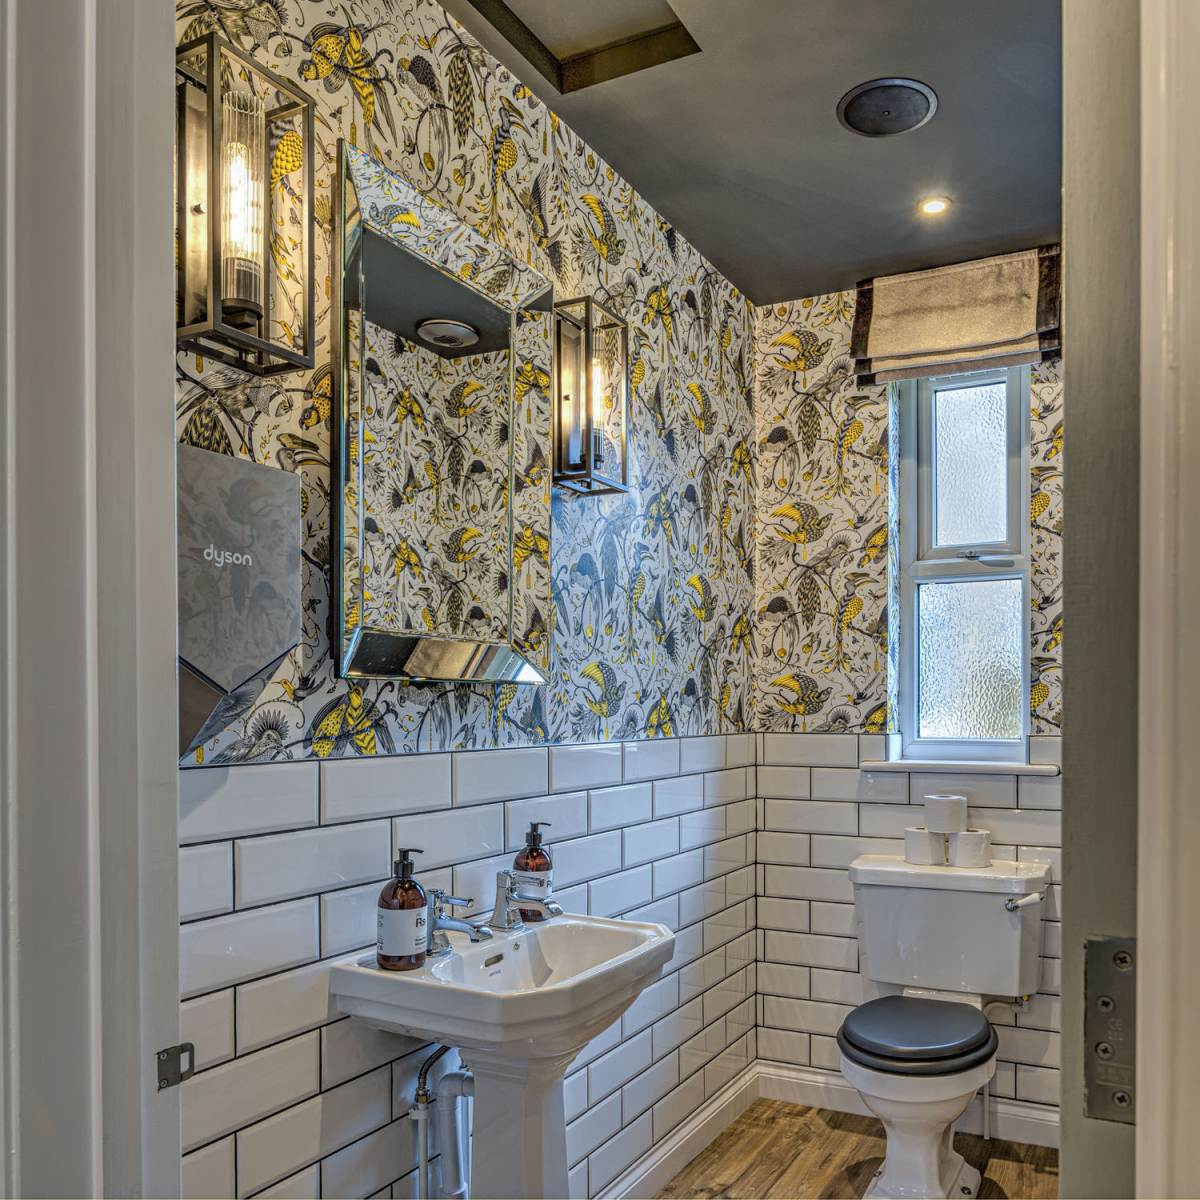 Bathroom at Hogs Head Hotel in Suffolk